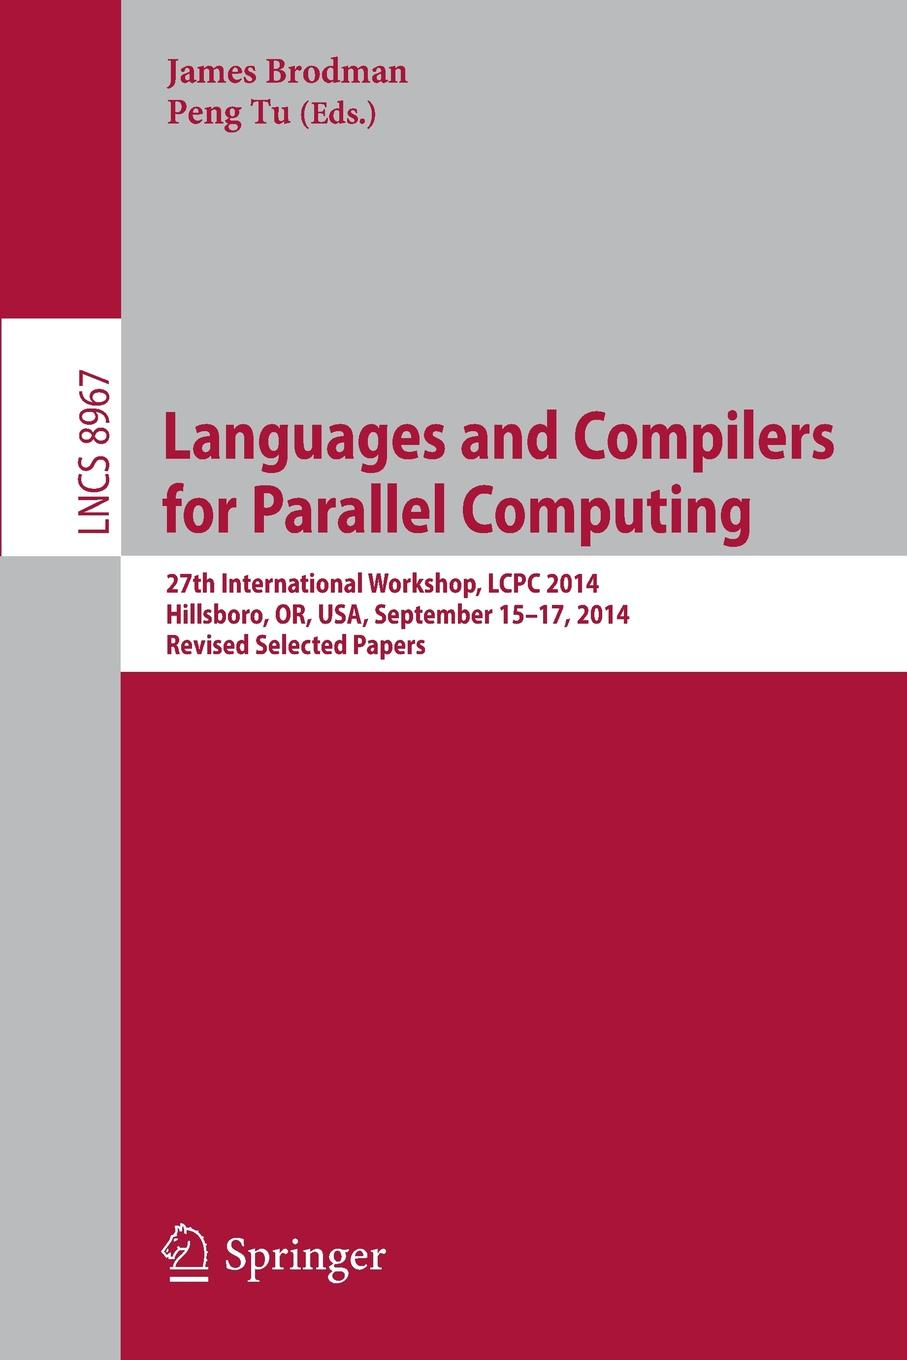 Languages and Compilers for Parallel Computing. 27th International Workshop, LCPC 2014, Hillsboro, OR, USA, September 15-17, 2014, Revised Selected Papers fayez gebali algorithms and parallel computing